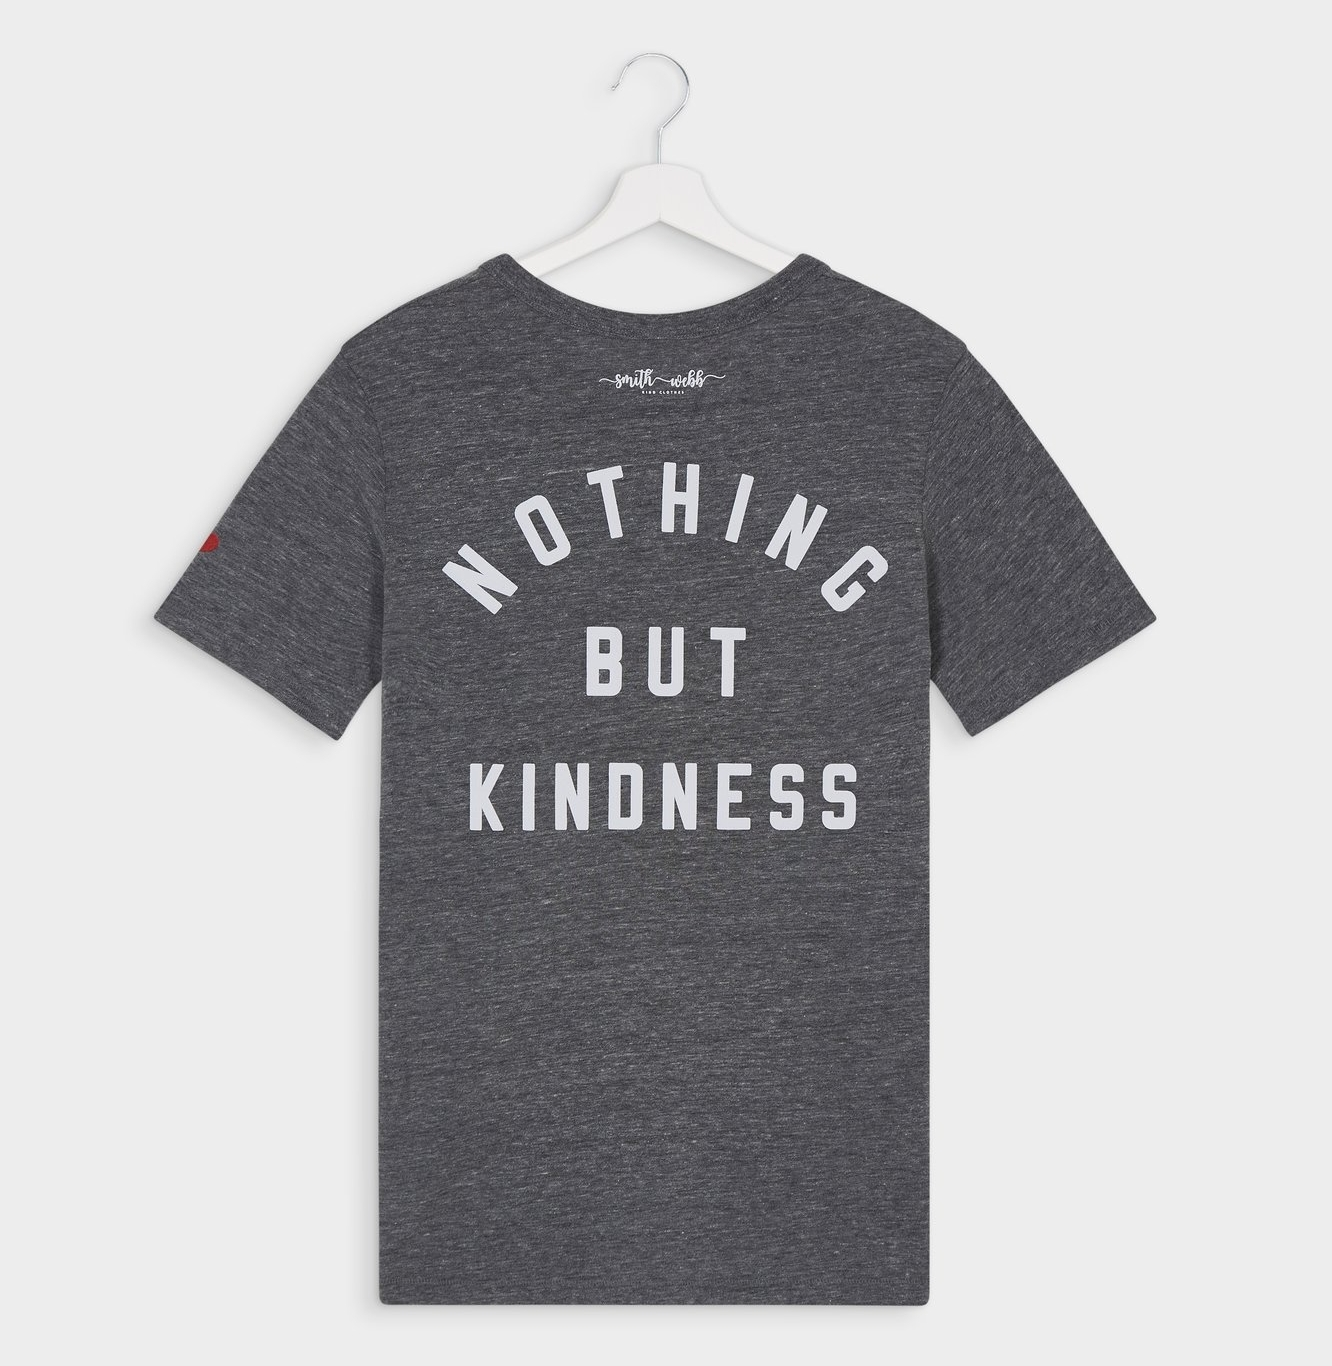 Nothing But Kindness Tee  (in aid of Mind Charity) - £28  Smith Webb